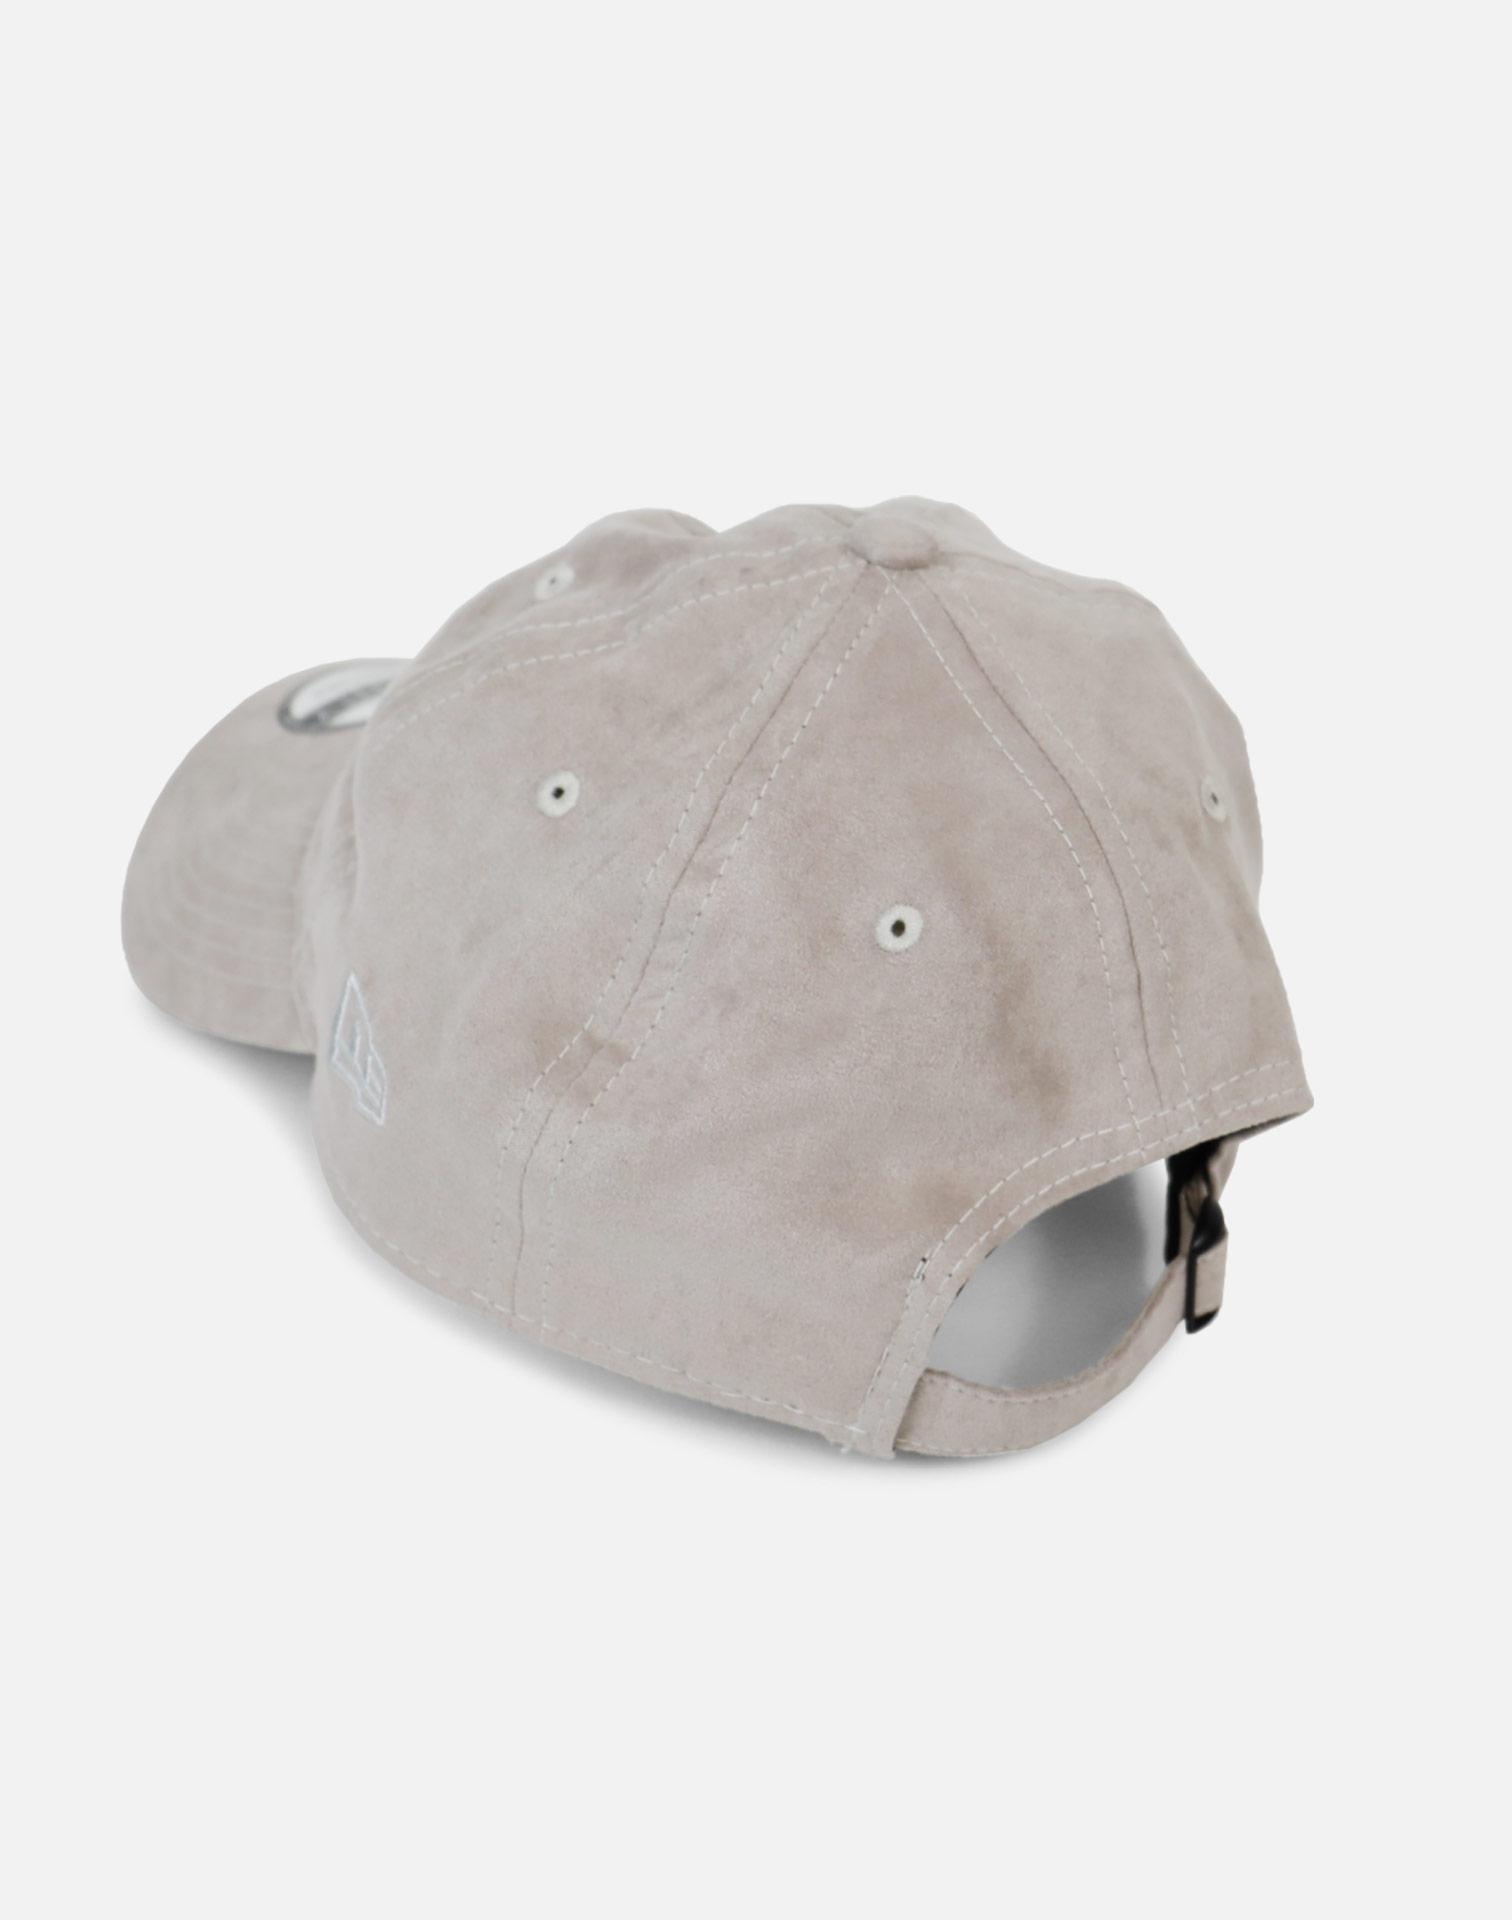 timeless design c1b87 5392c ... italy lyst ktz cleveland cavaliers stone wash suede dad hat in gray for  men de060 40adc